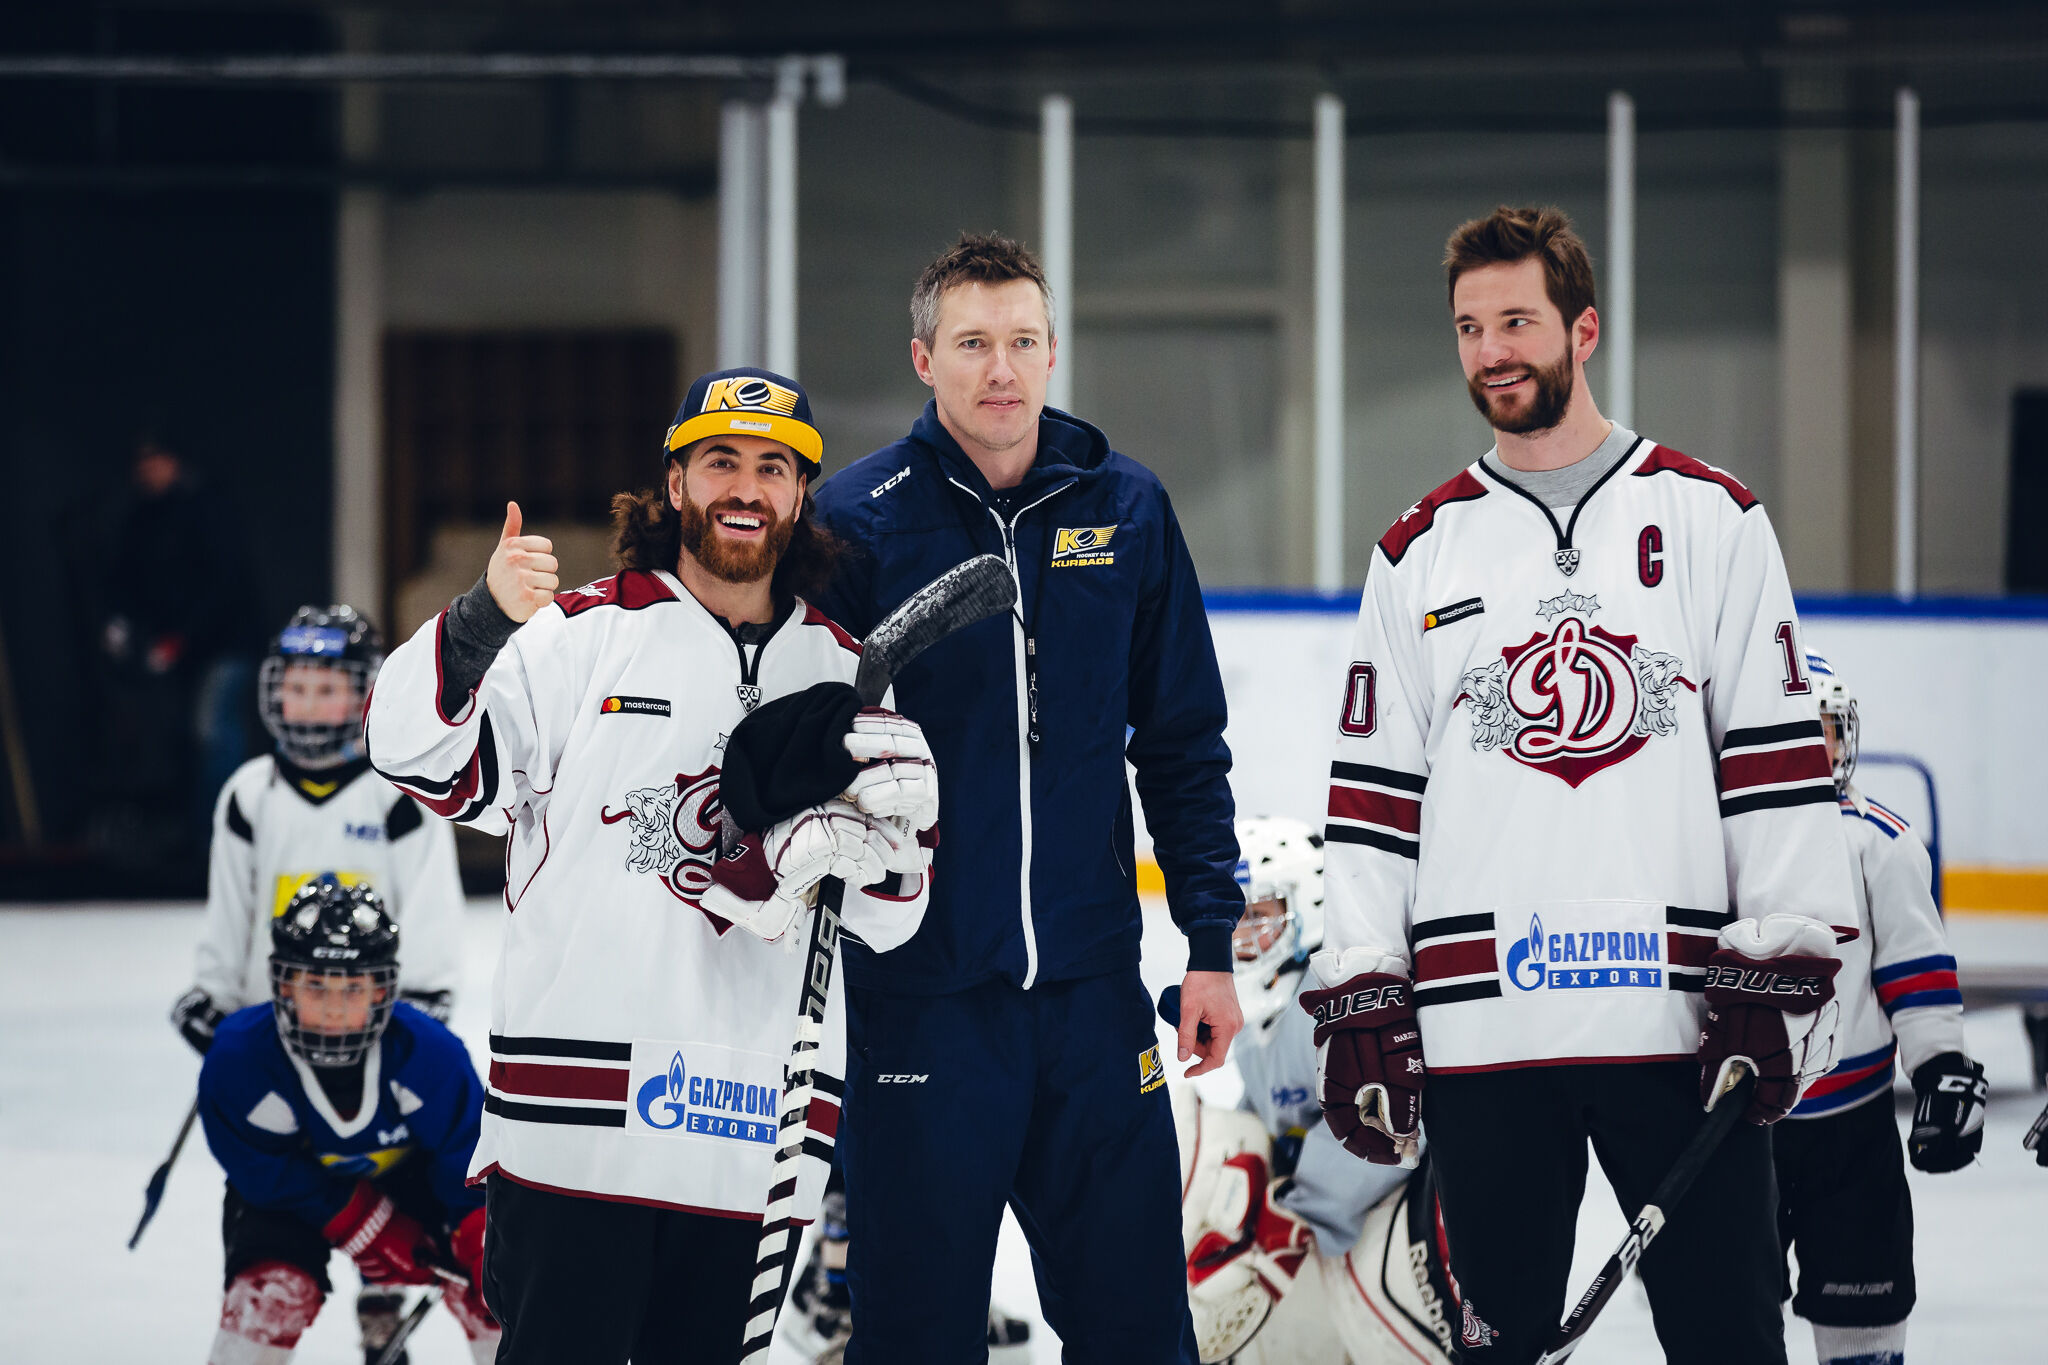 Dinamo Riga stars visit our sports school!